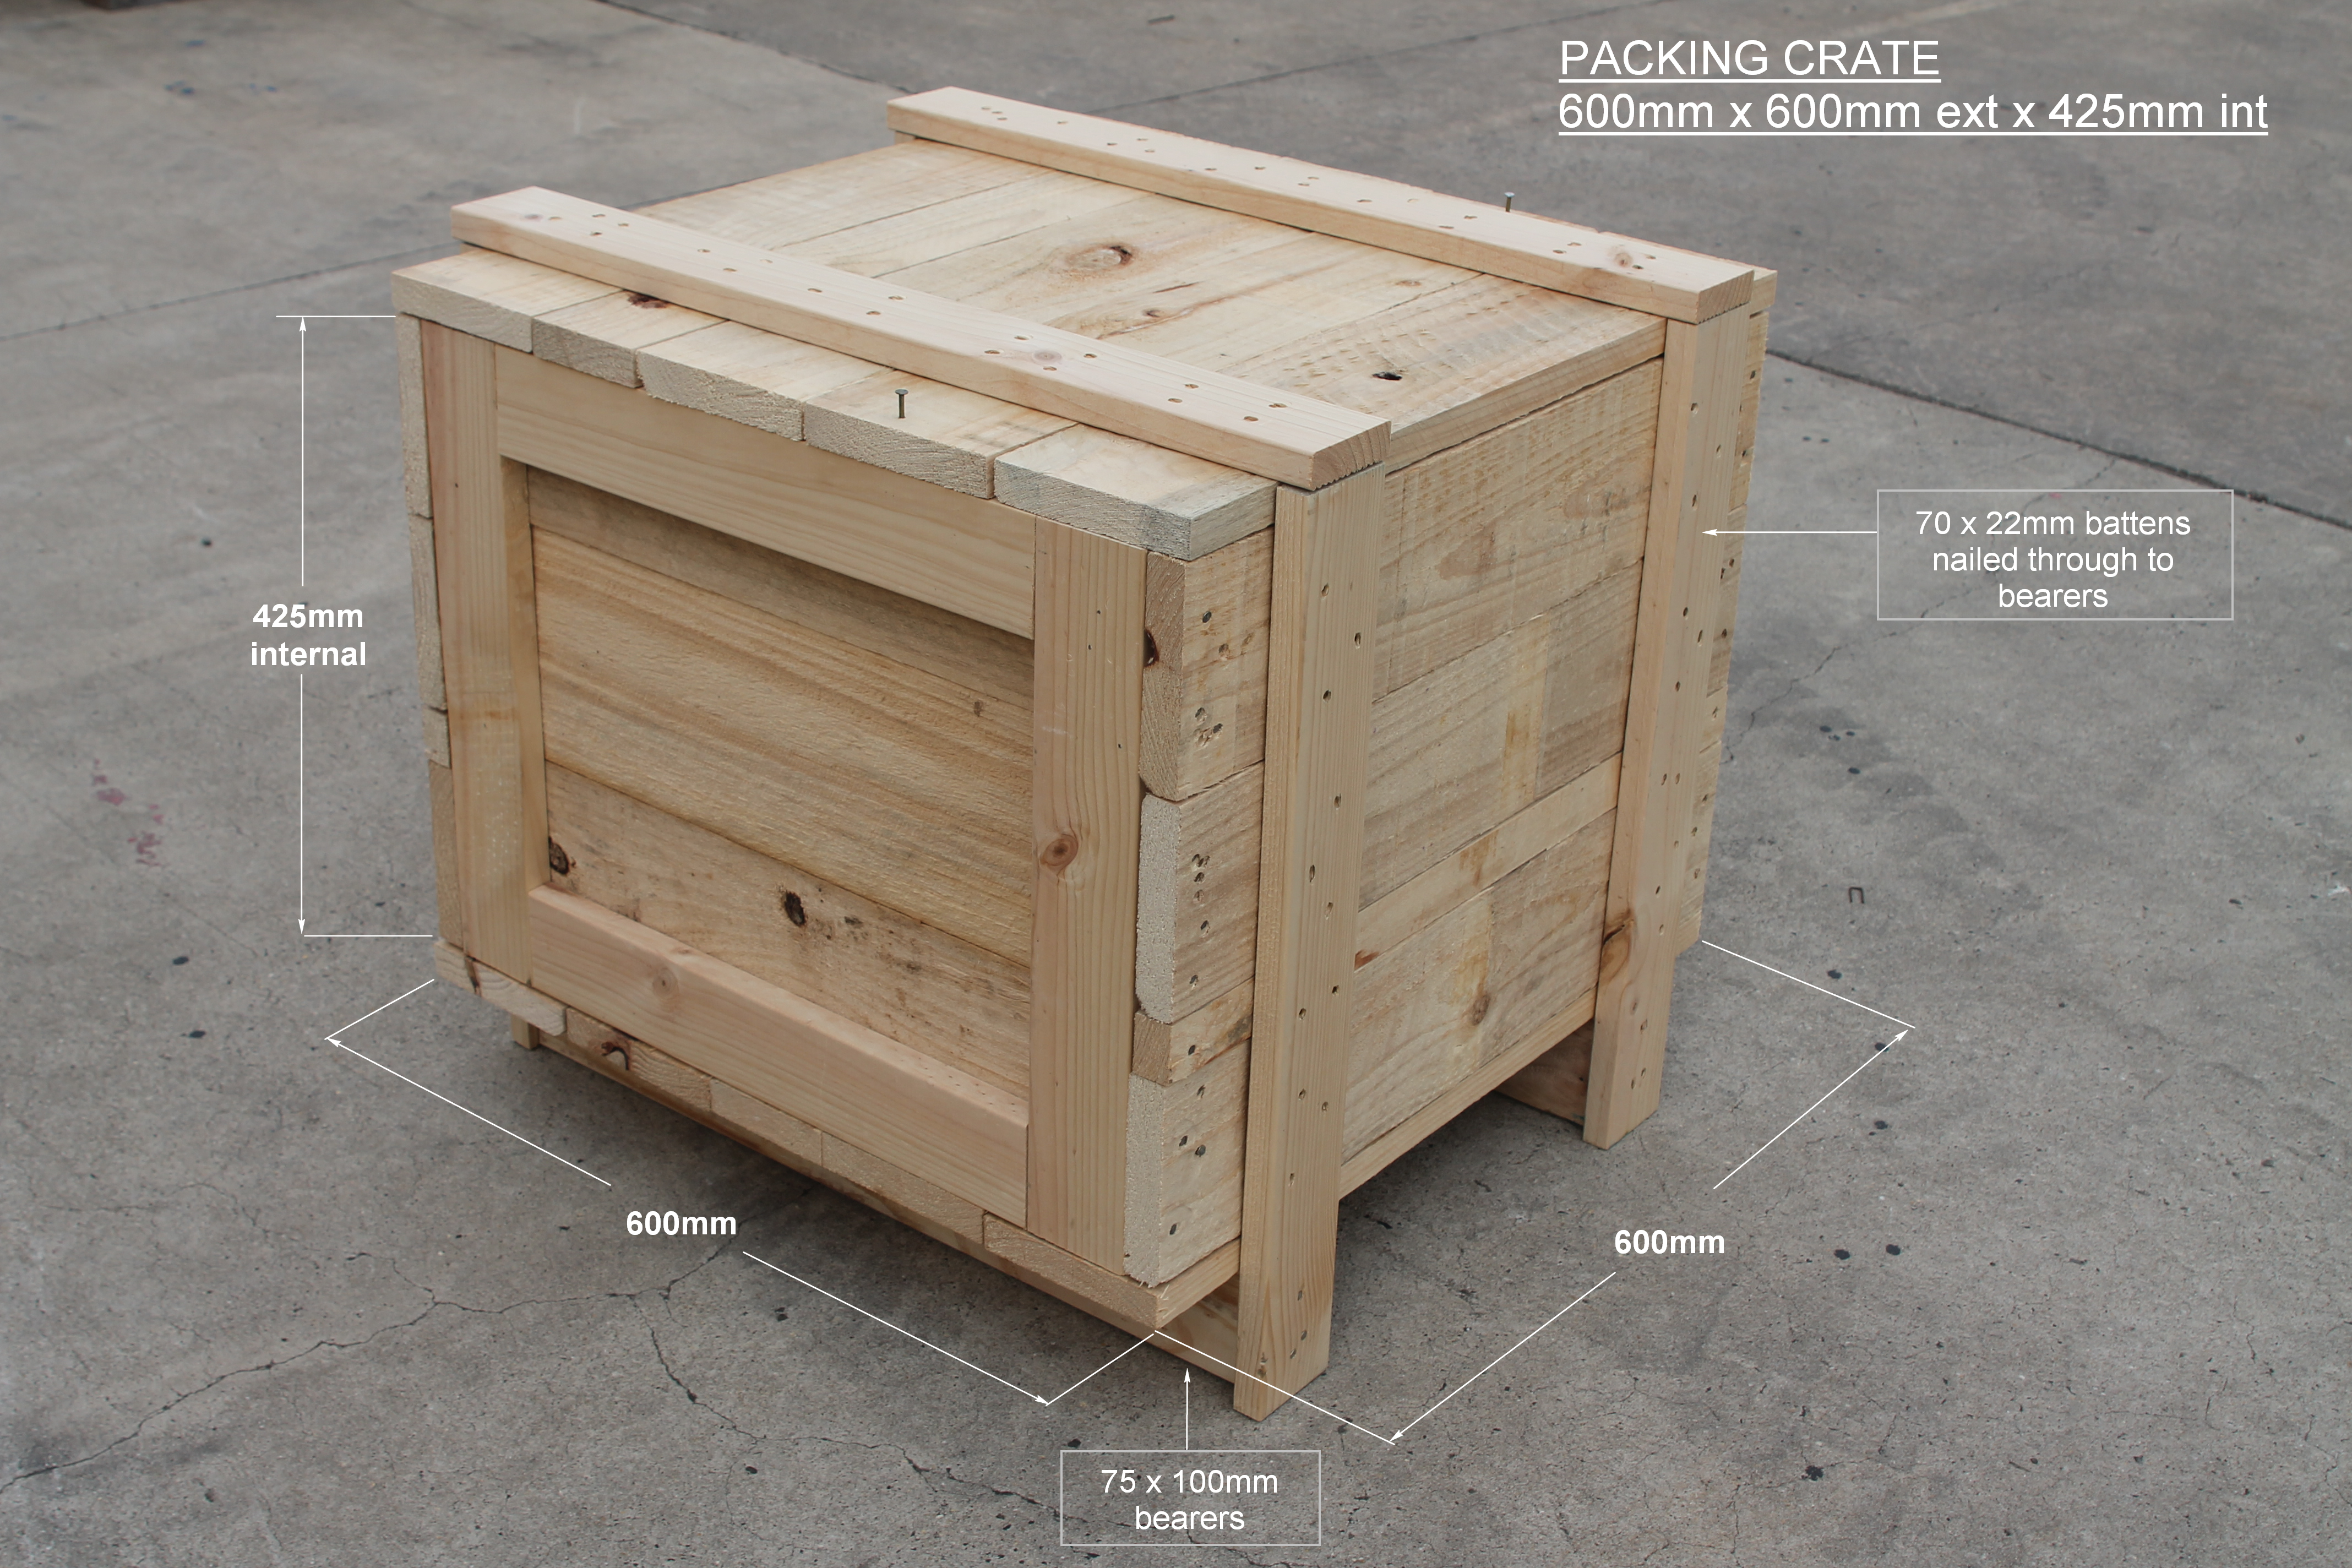 Timber Crates For Sale Packaging Crate Marshall Pine